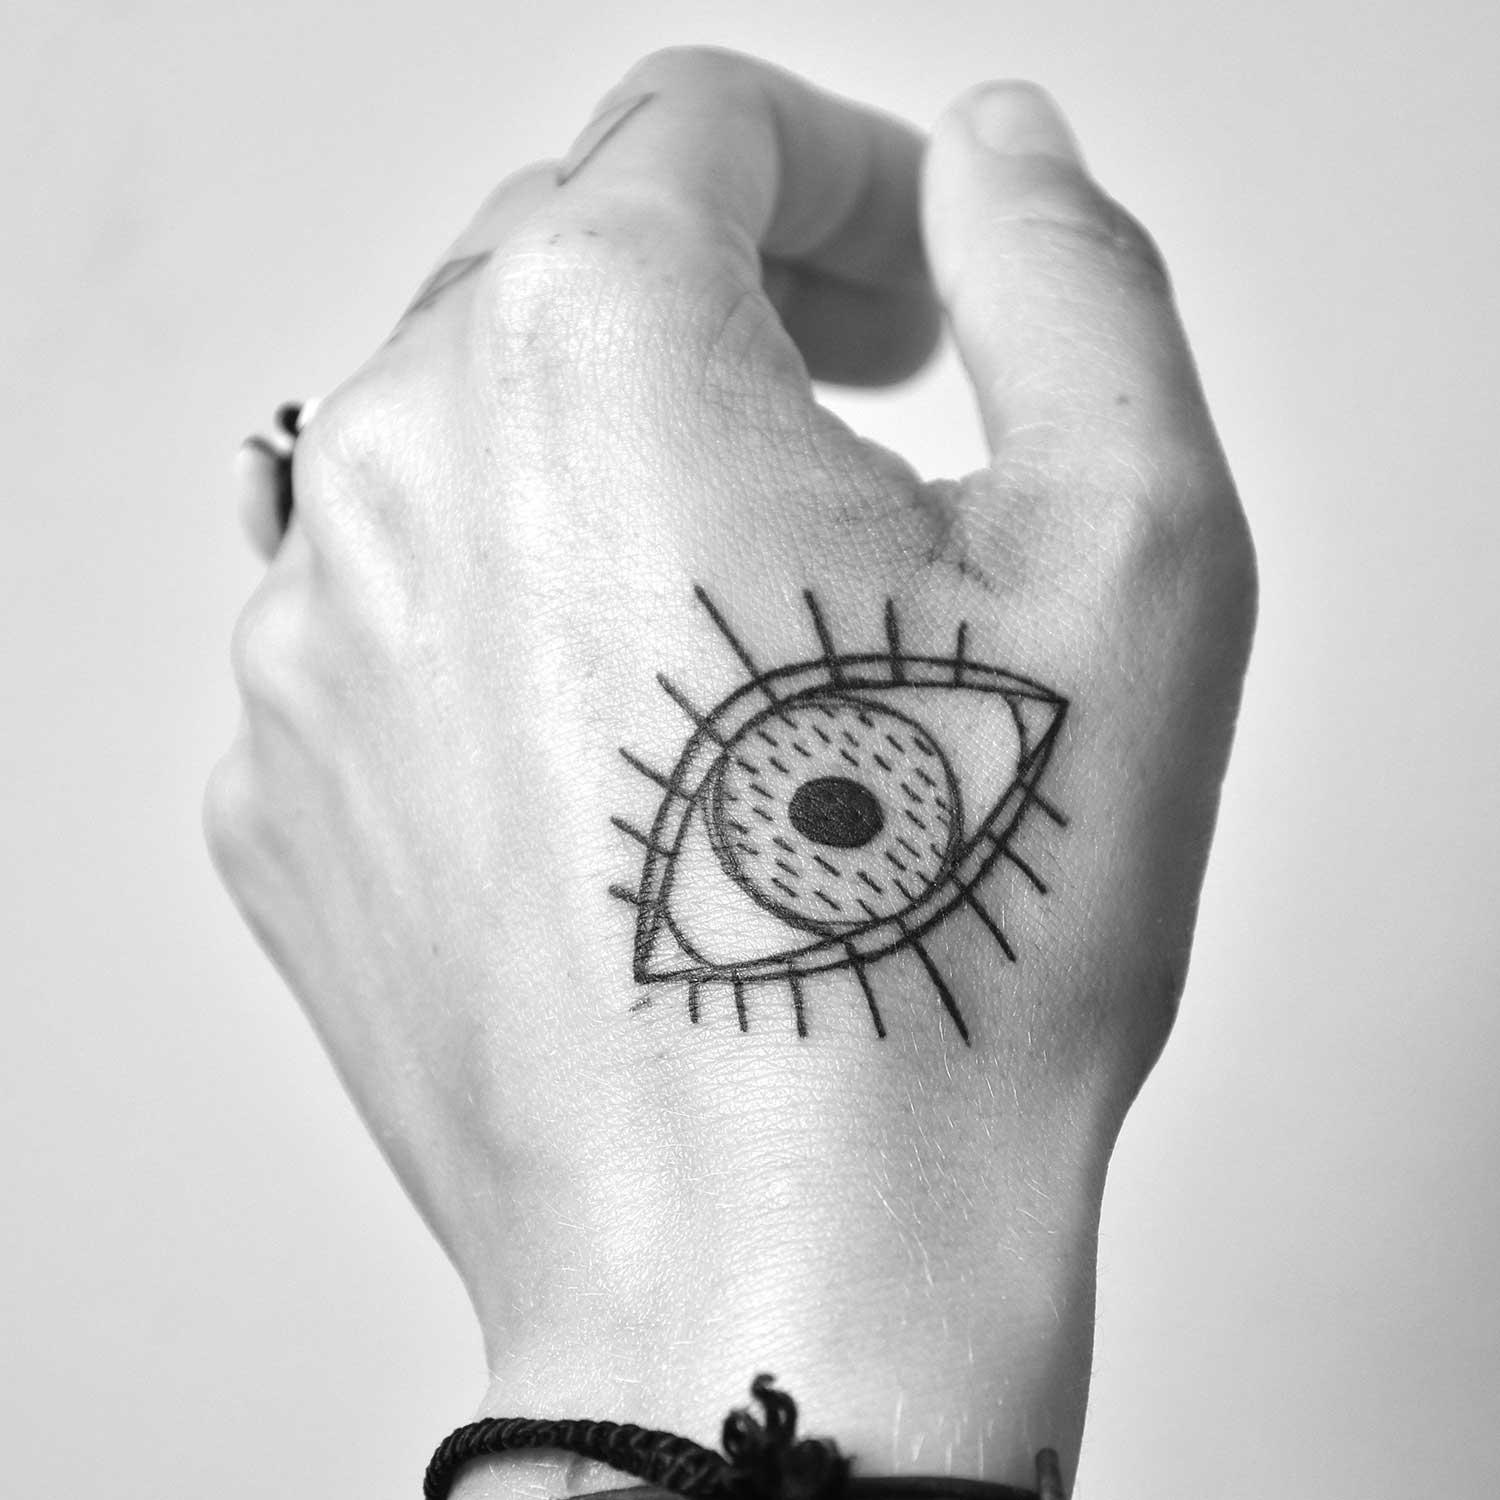 Drawn style eye on hand